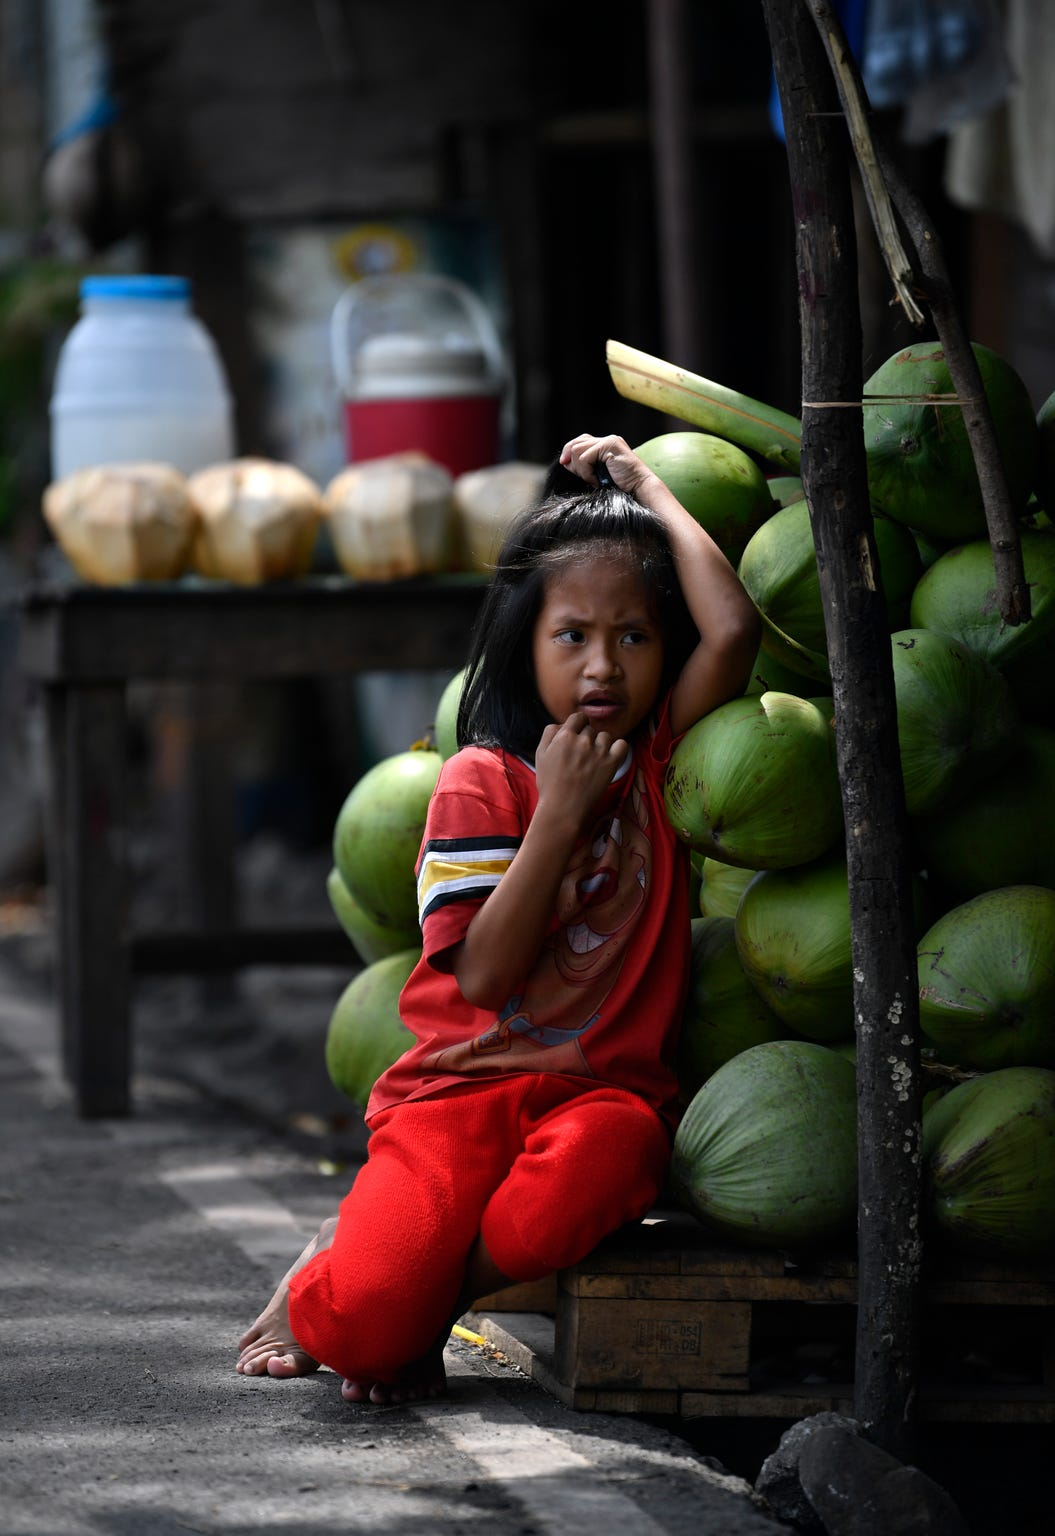 A young girl leans into a stack of coconuts as she ties her hair at a roadside stand along the Bataan Provincial Highway in the Philippines Oct. 20, 2019. The road is the same one taken by American and Filipino prisoners of war during the infamous Bataan Death March in April 1942.